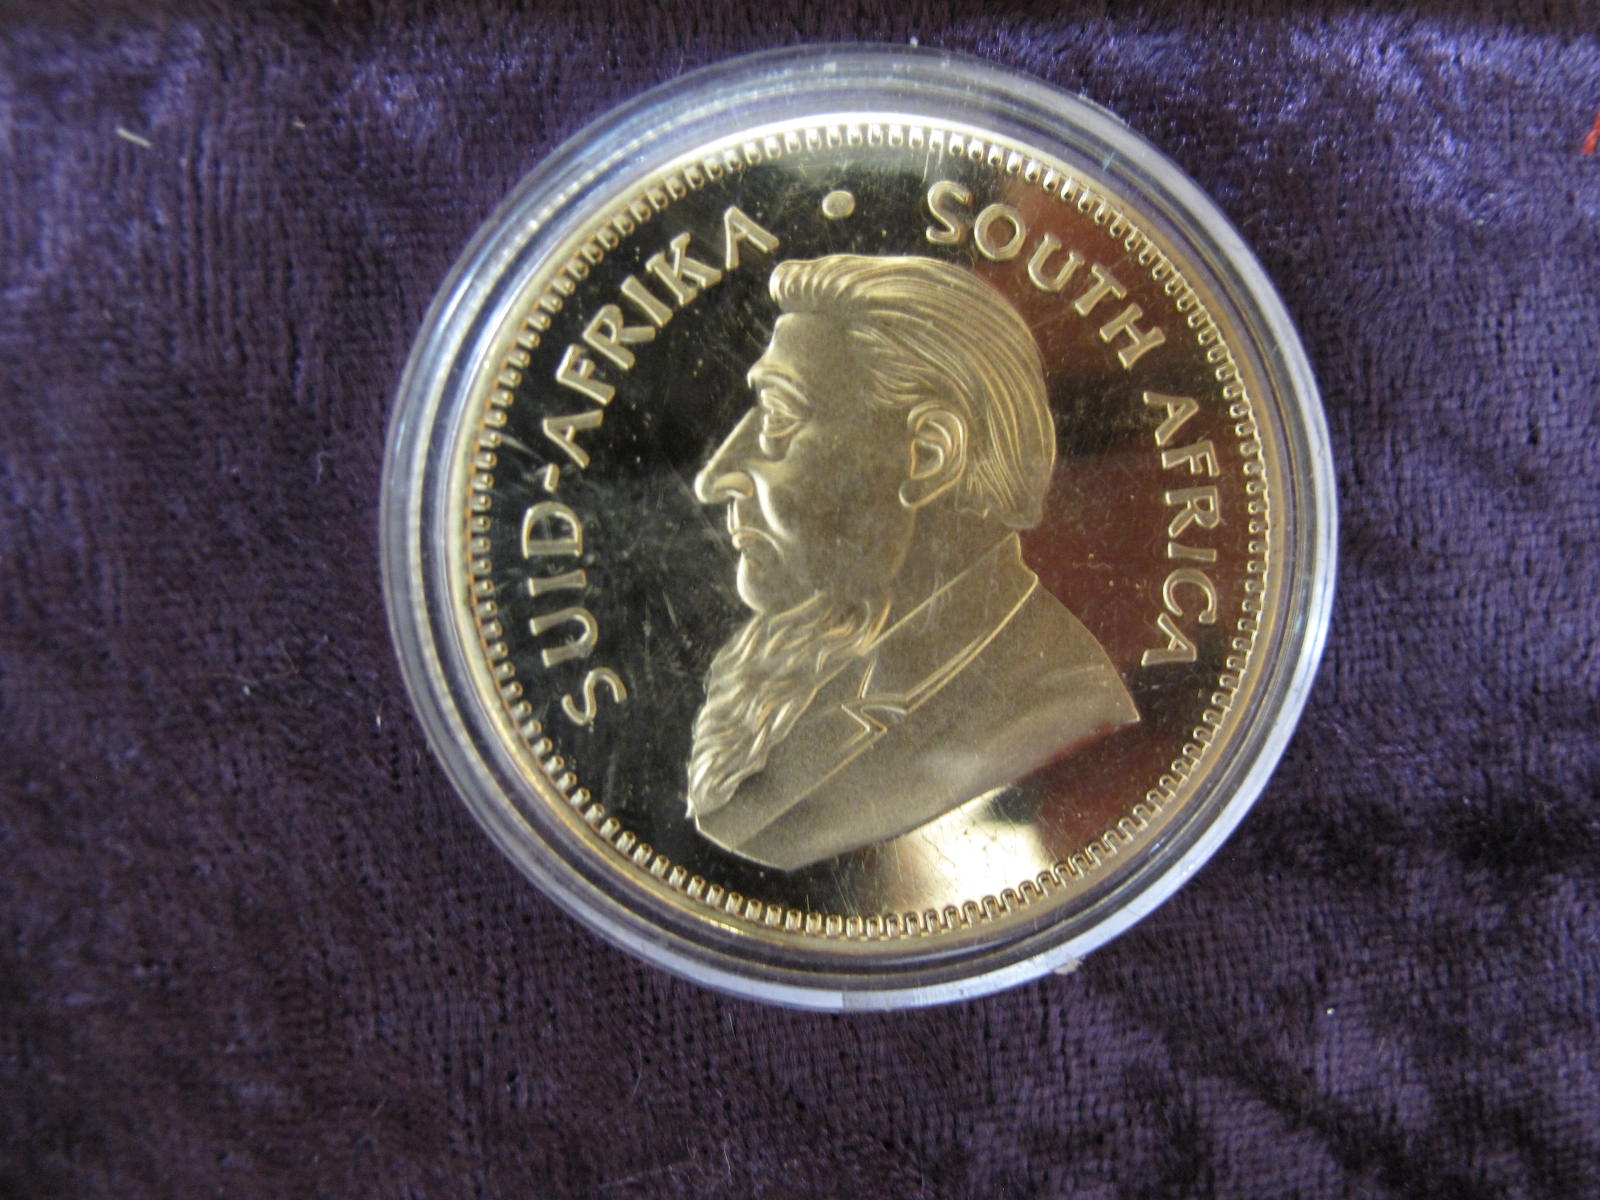 Lot 240 - Krugerrand - Sold for £130